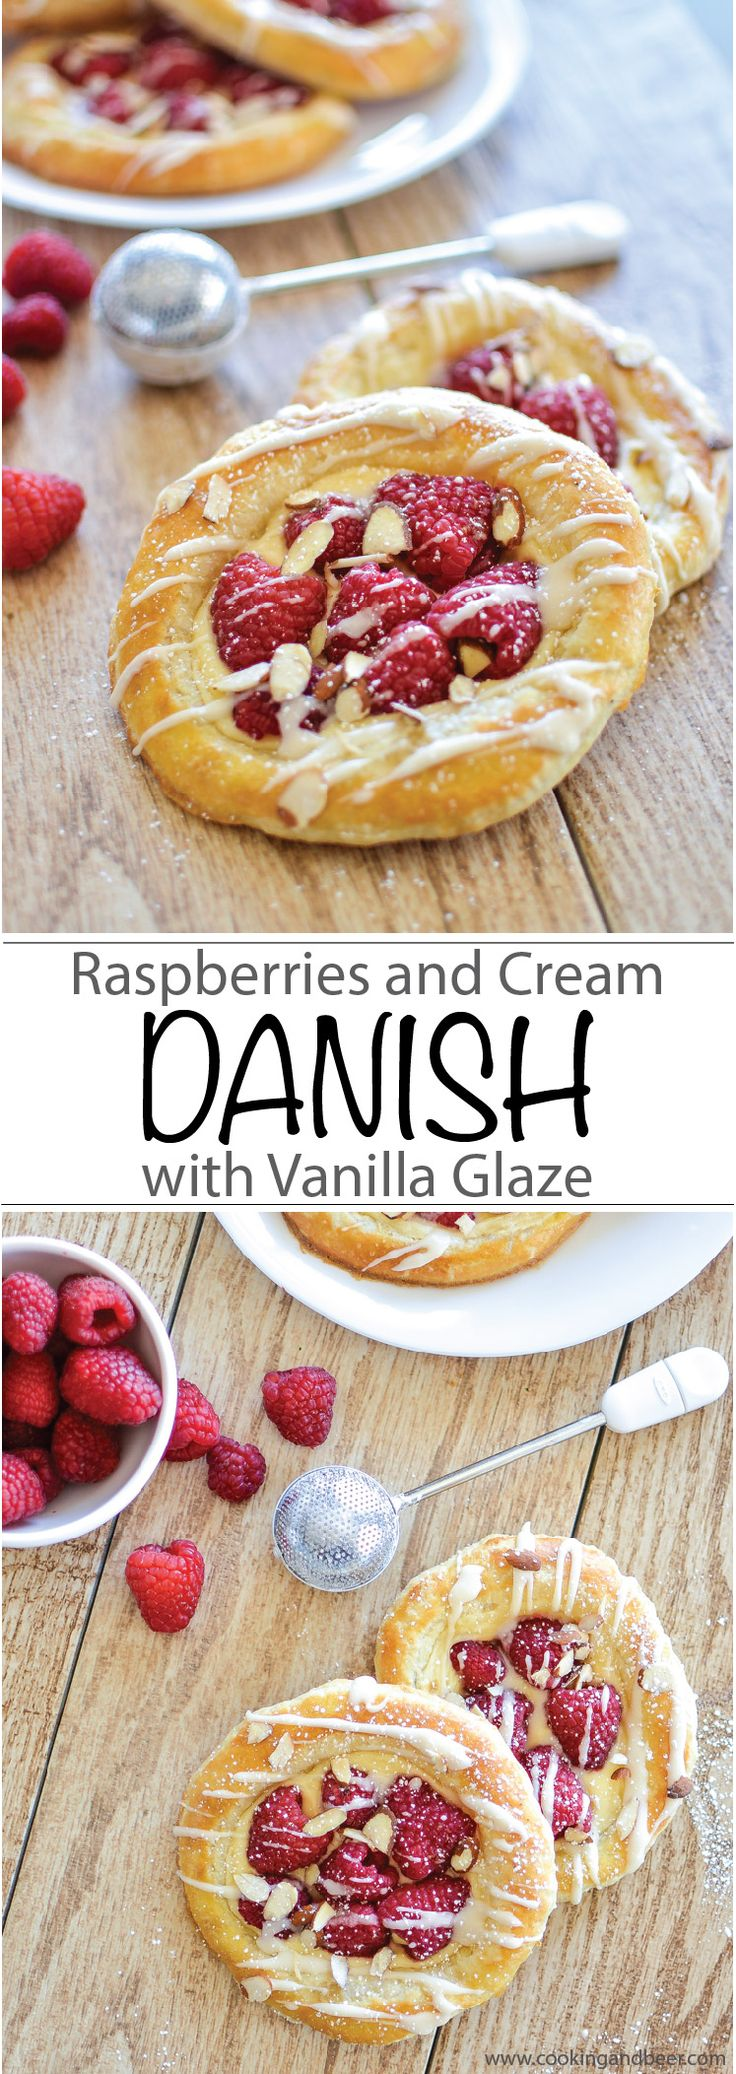 Raspberries and Cream Danish with Vanilla Glaze is the perfect sweet treat for Easter brunch! | www.cookingandbeer.com